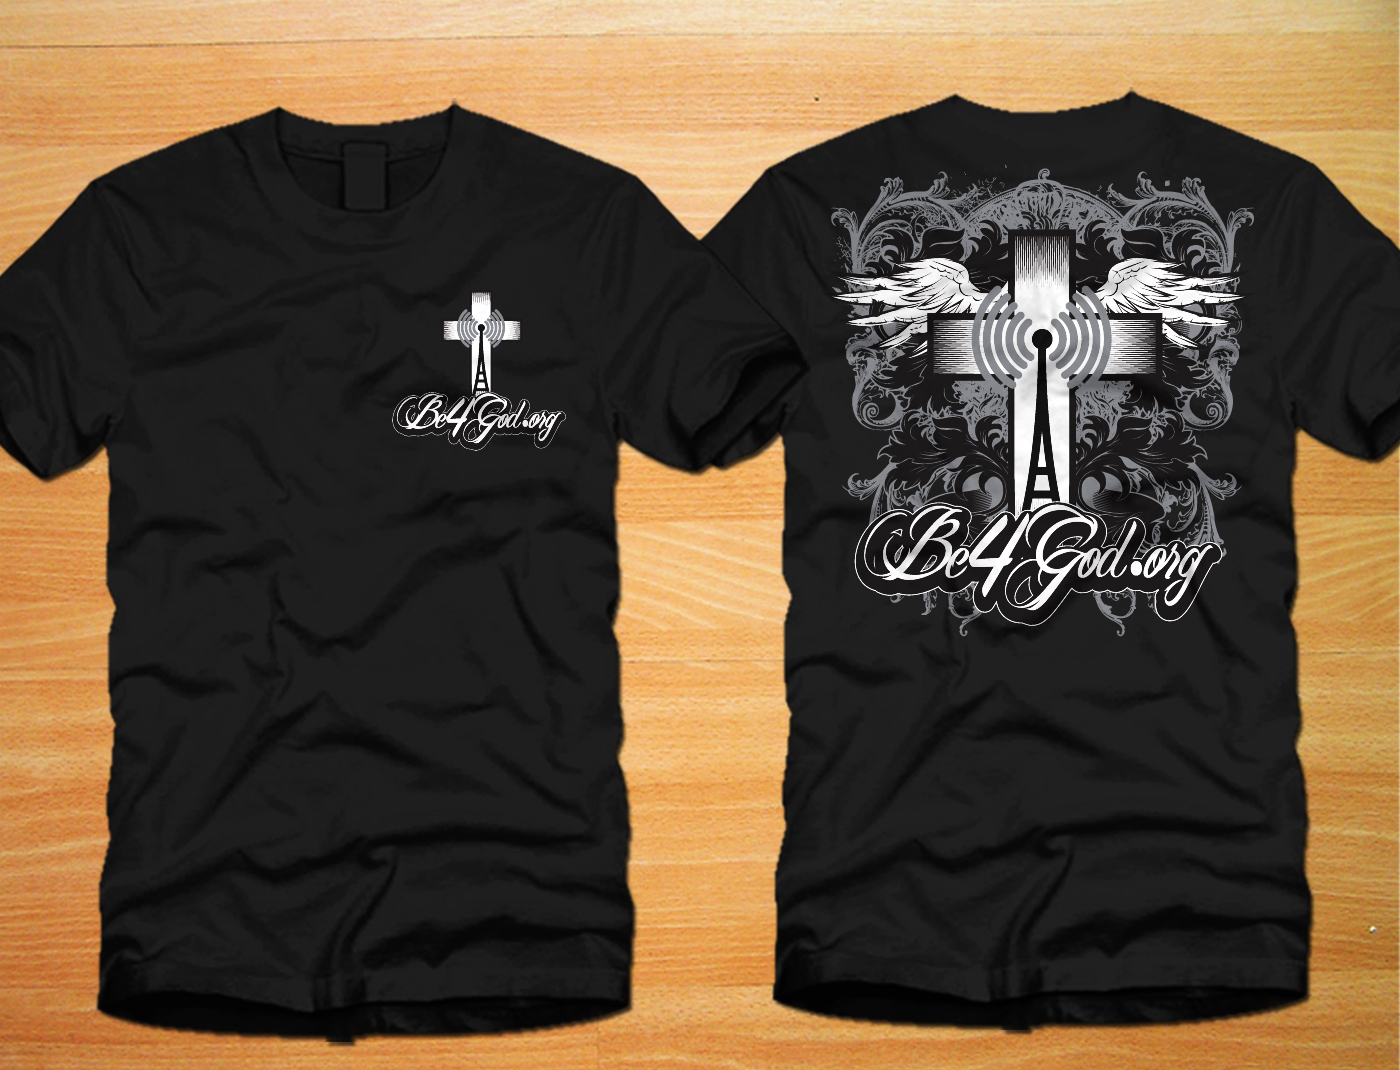 Shirt design style - T Shirt Design Design 2795248 Submitted To Christian T Shirt Design